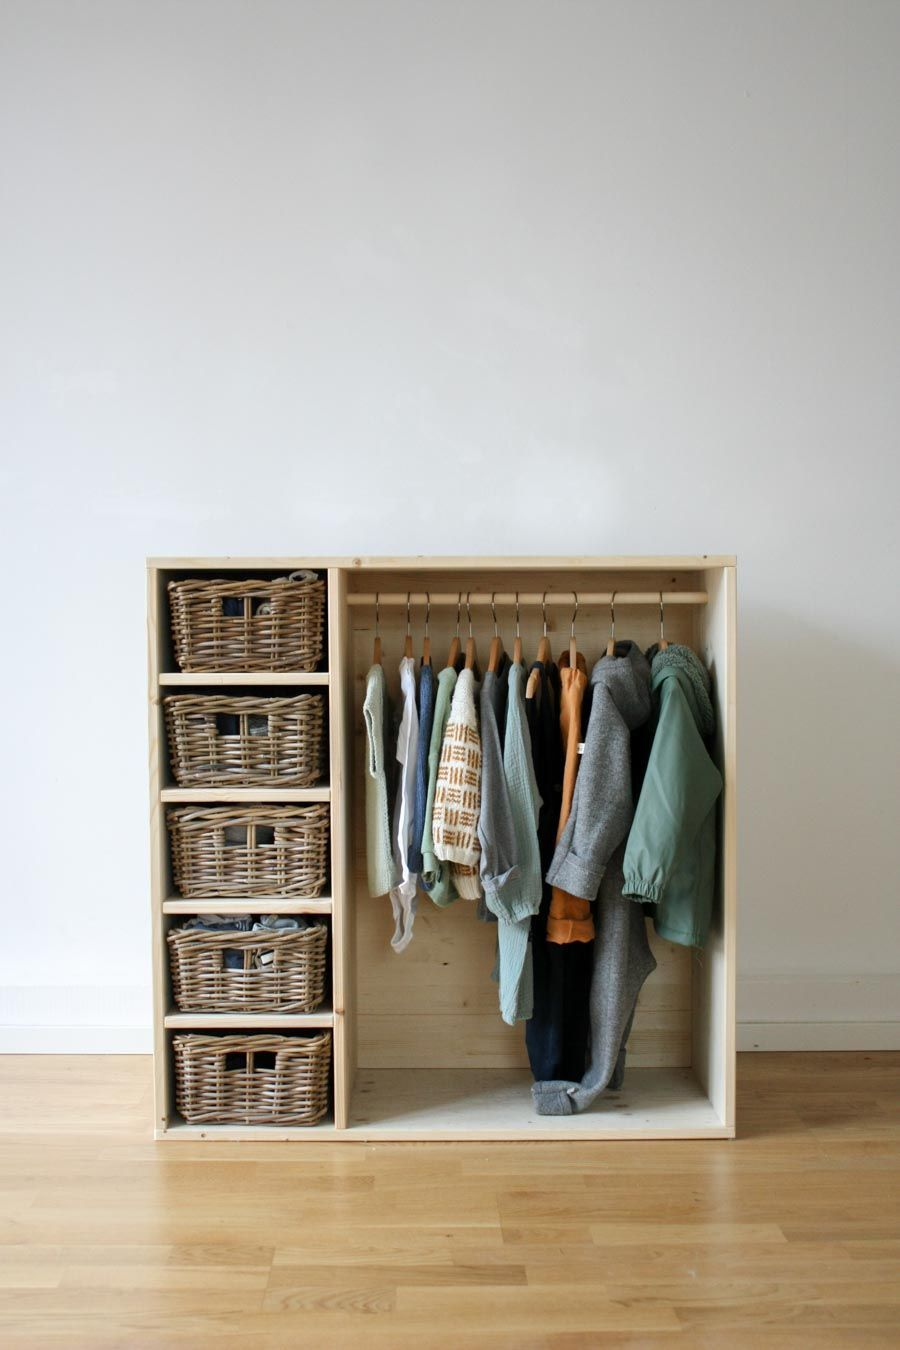 Pin by Kortney Mayer on Baby Things (With images) Diy